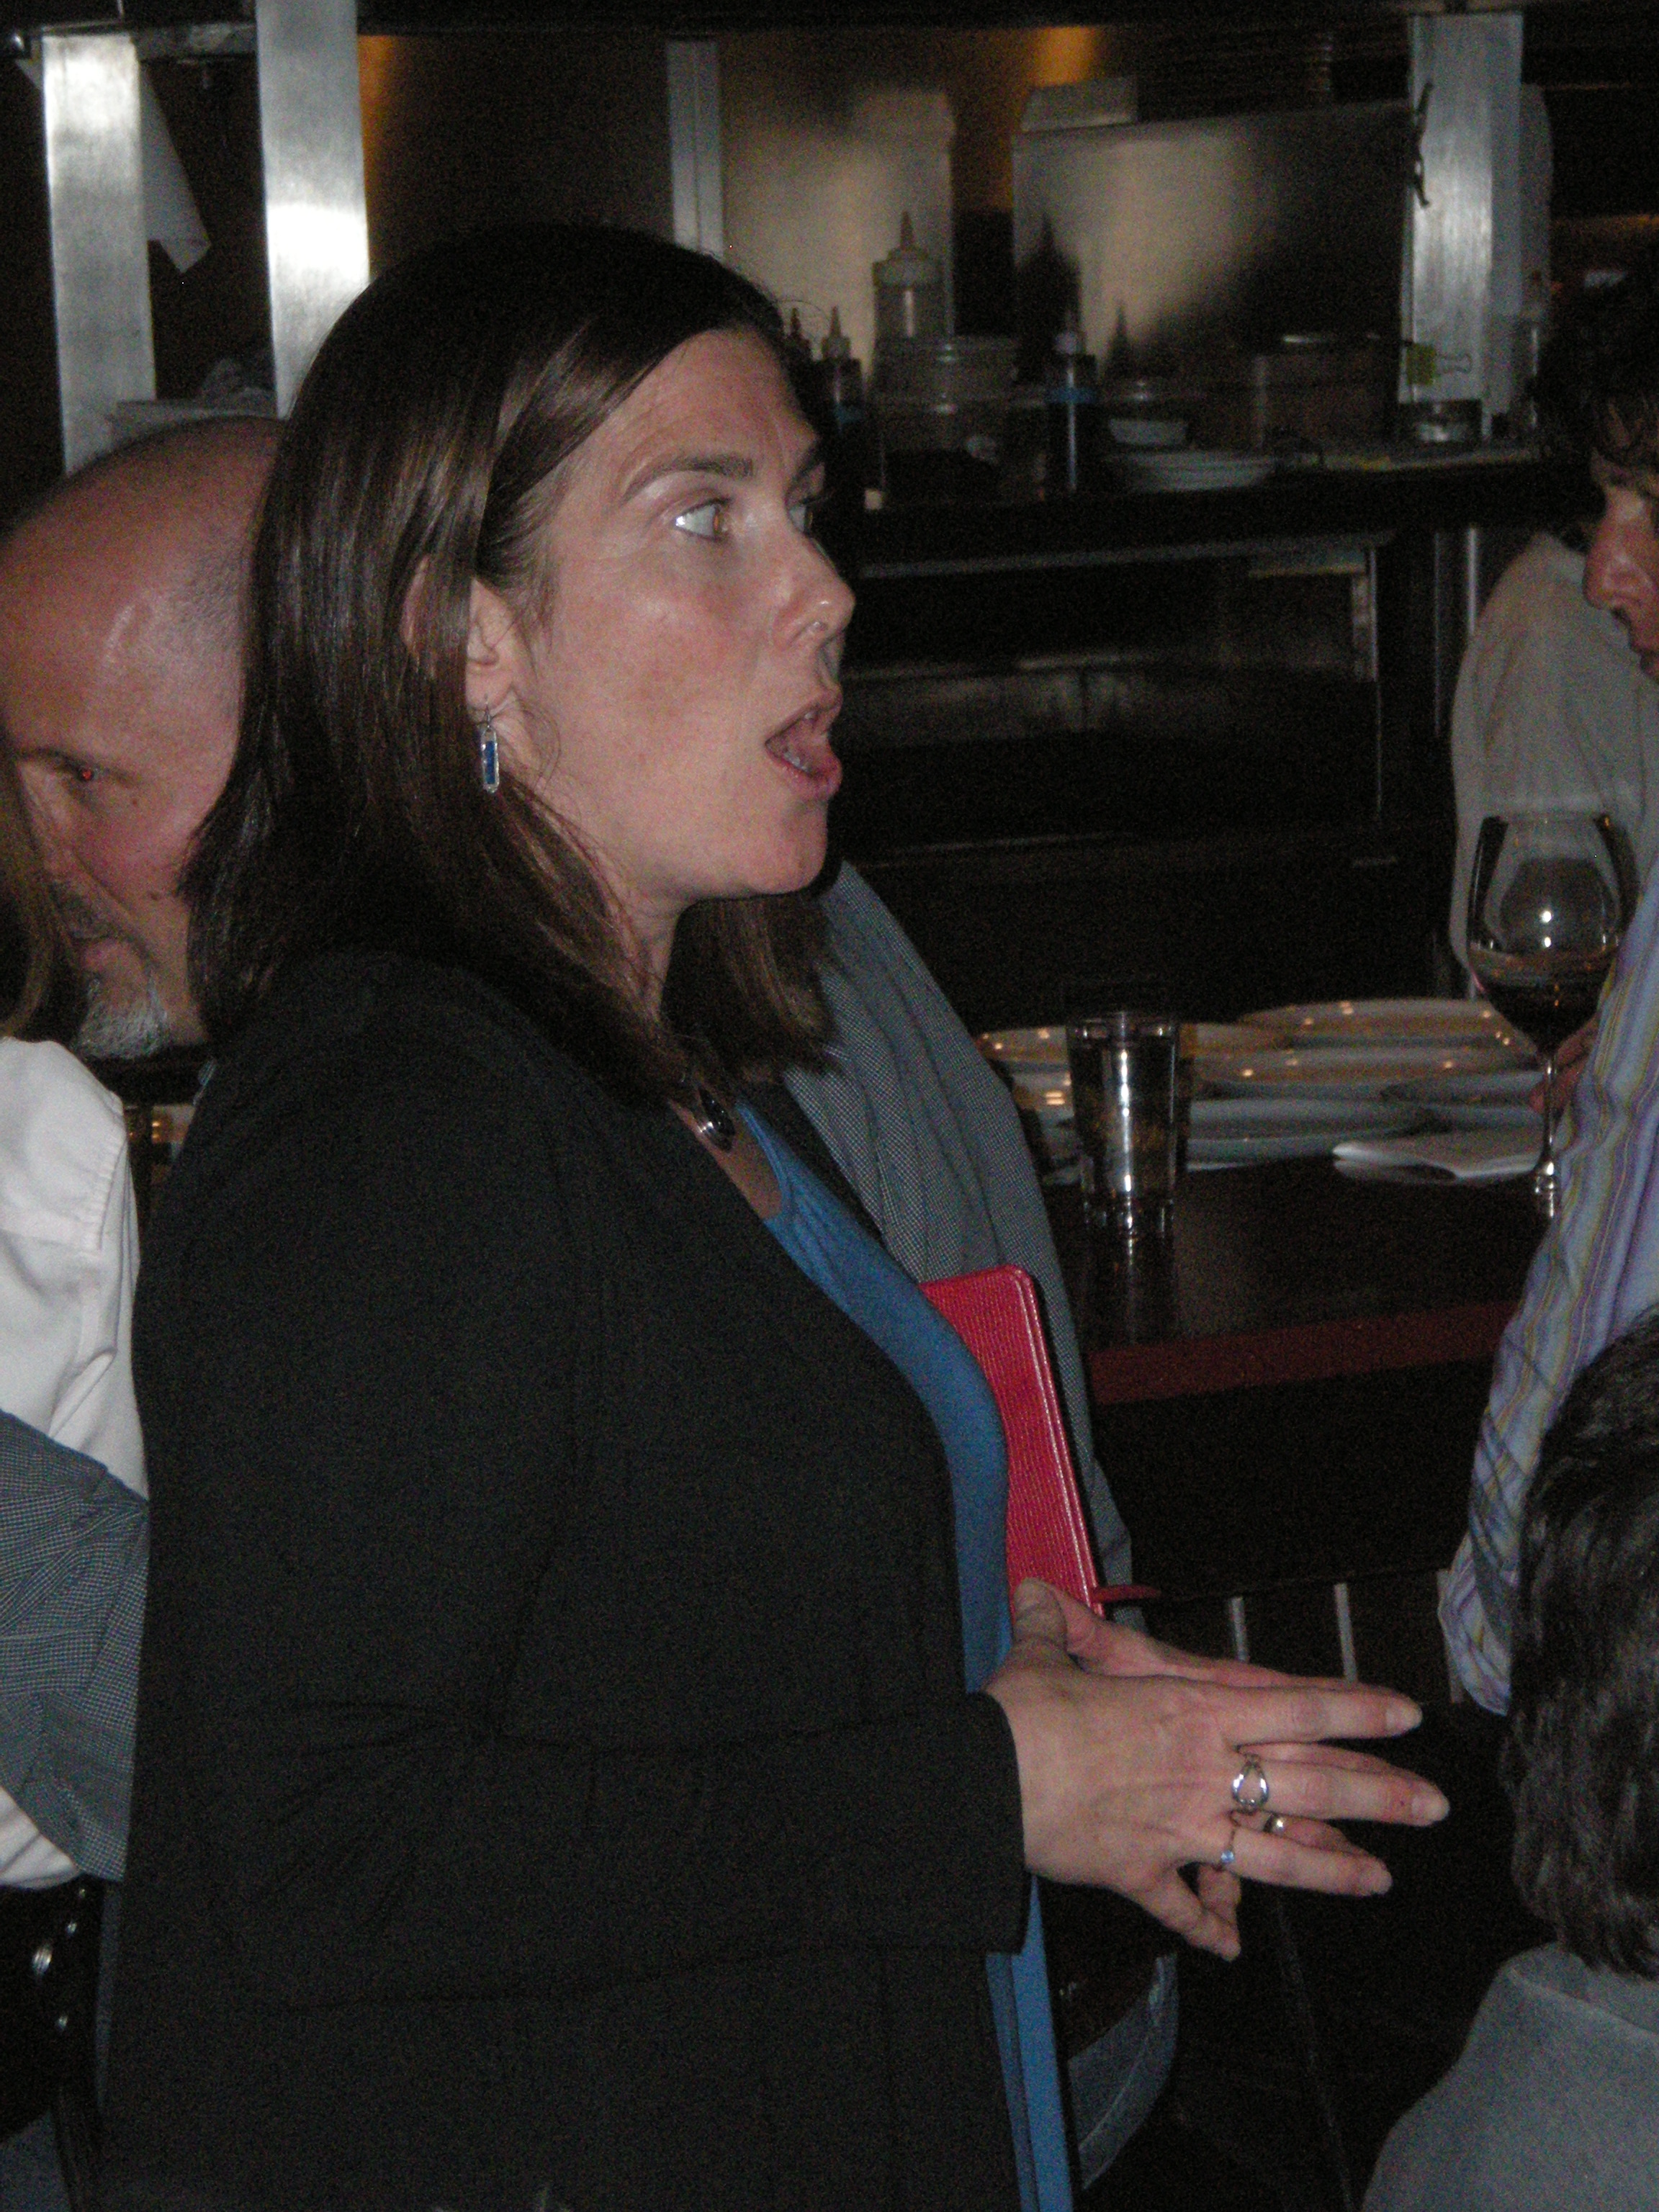 Heather Leslie of Brown University talks to guests about managing marine ecosystems